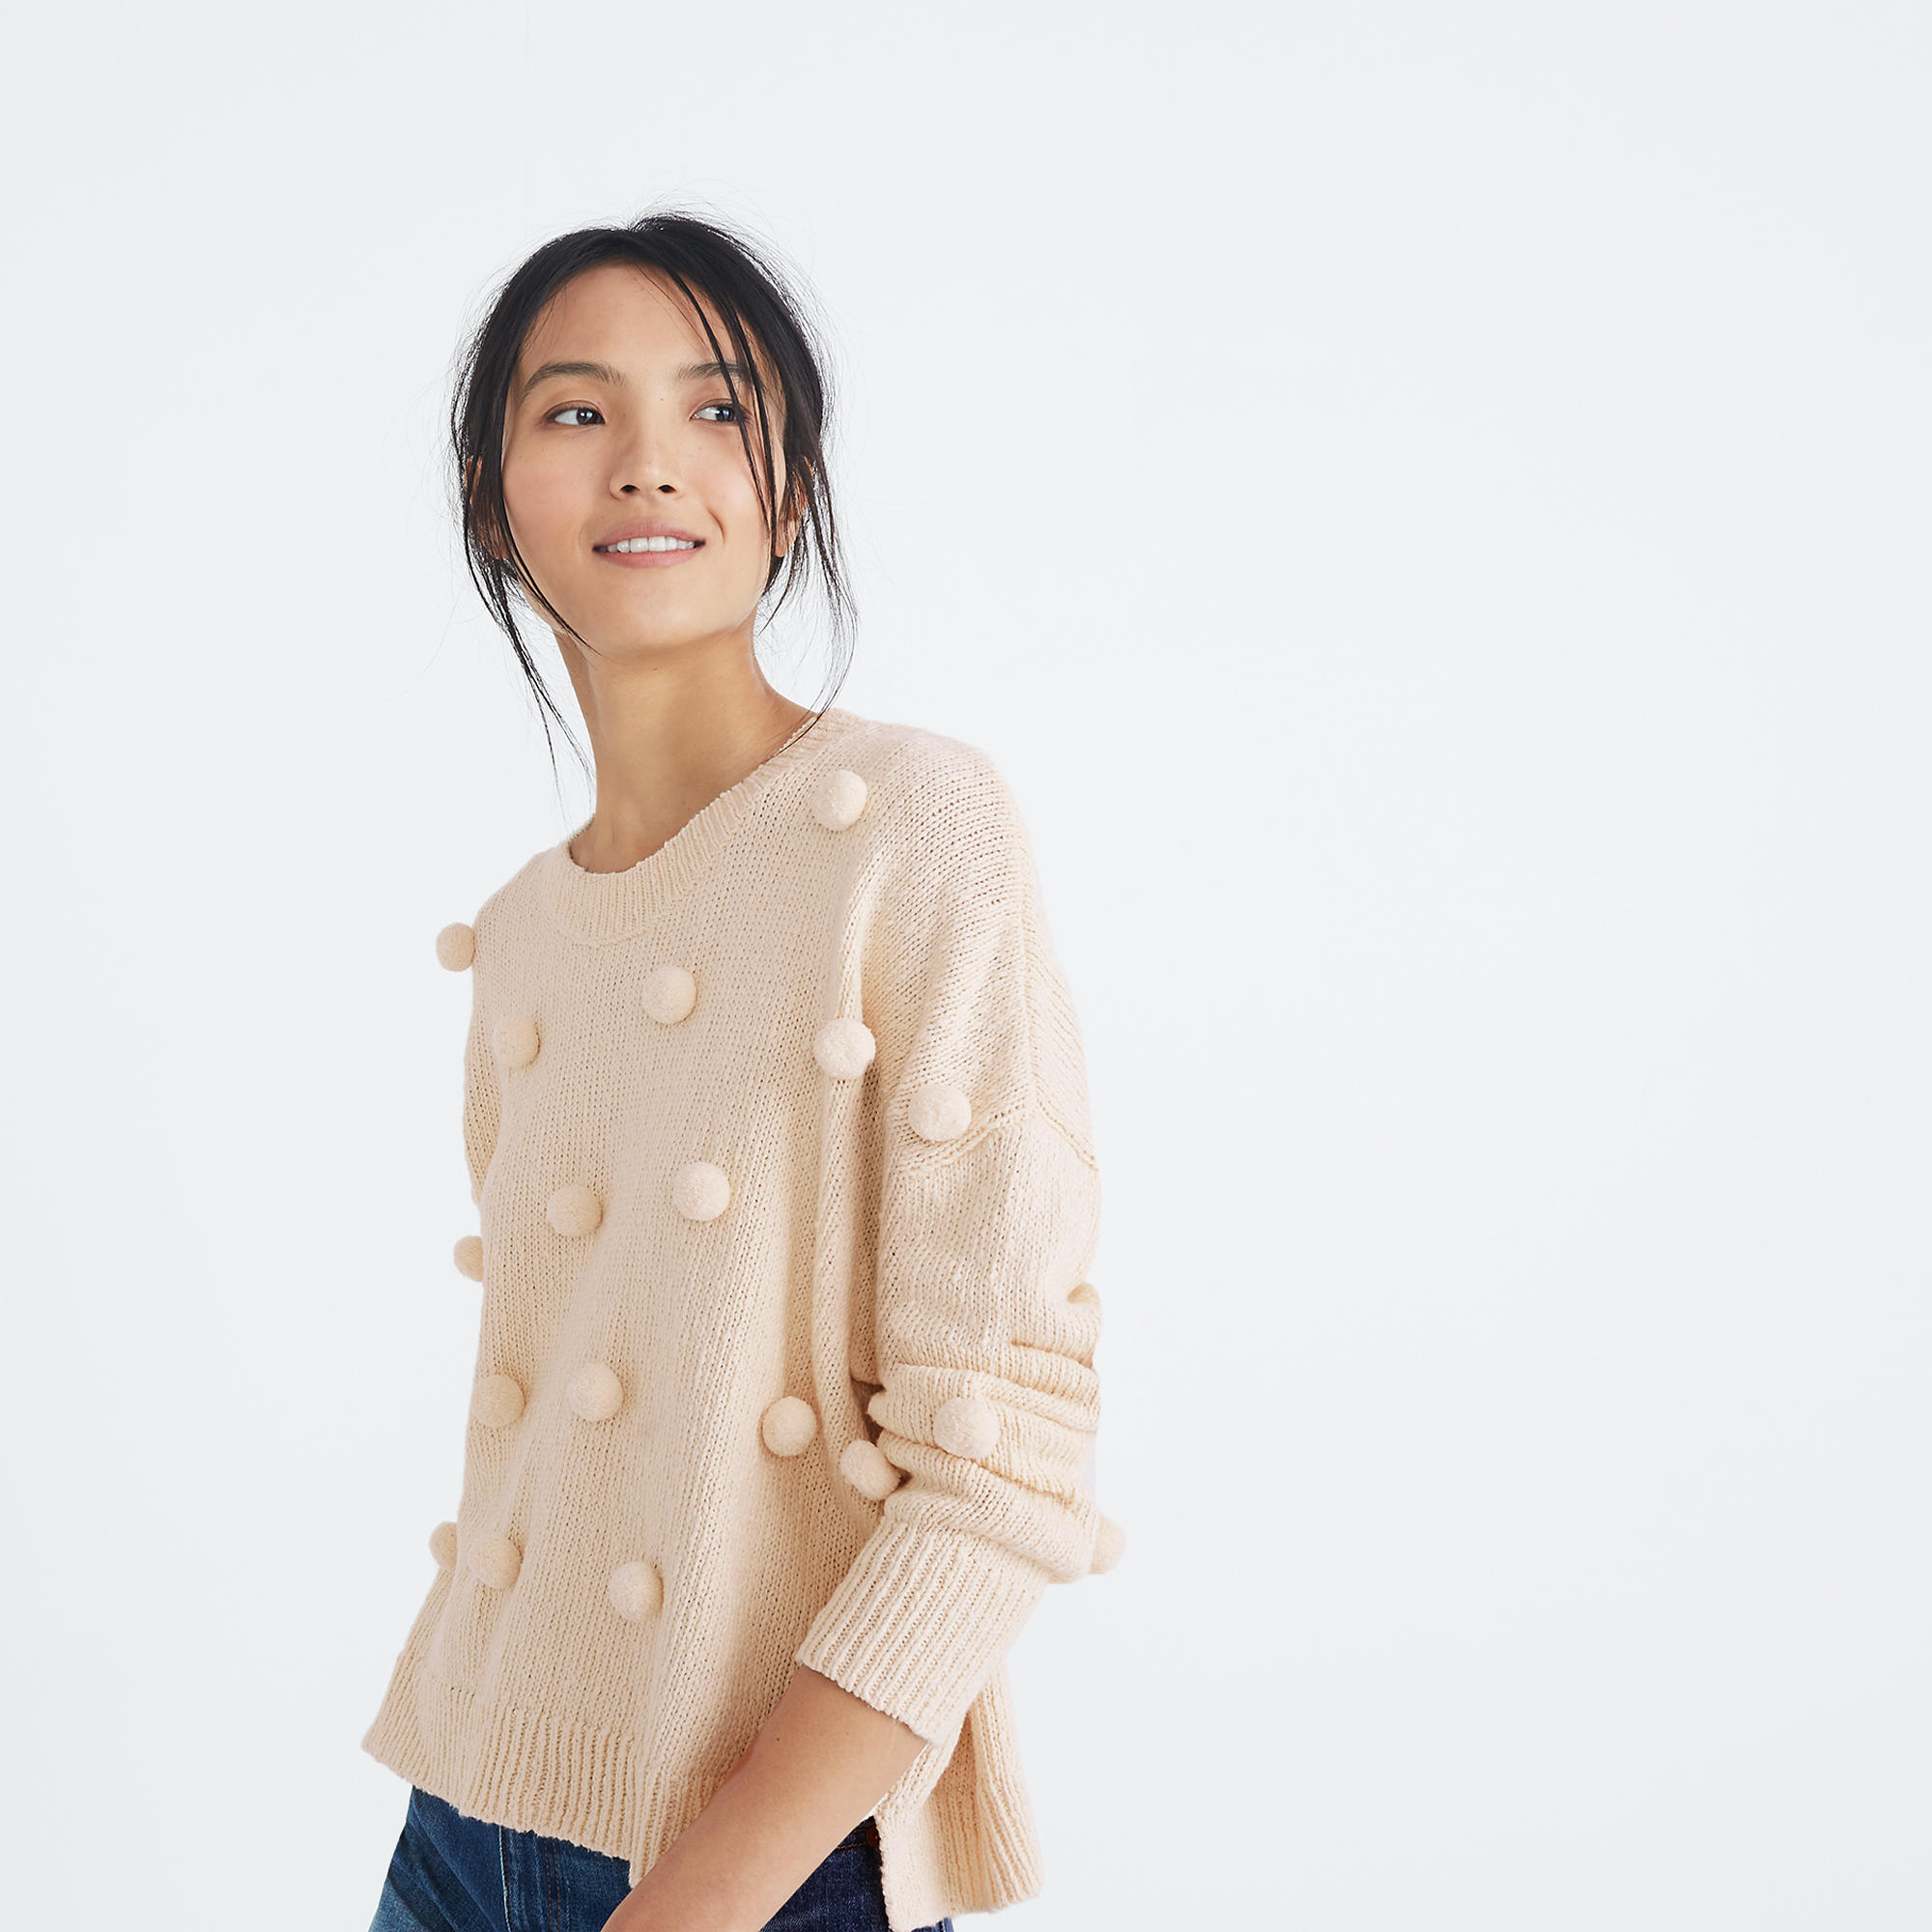 Madewell Pom-Pom Pullover Sweater - Weekly Finds by popular North Carolina style blogger Glitter, Inc.